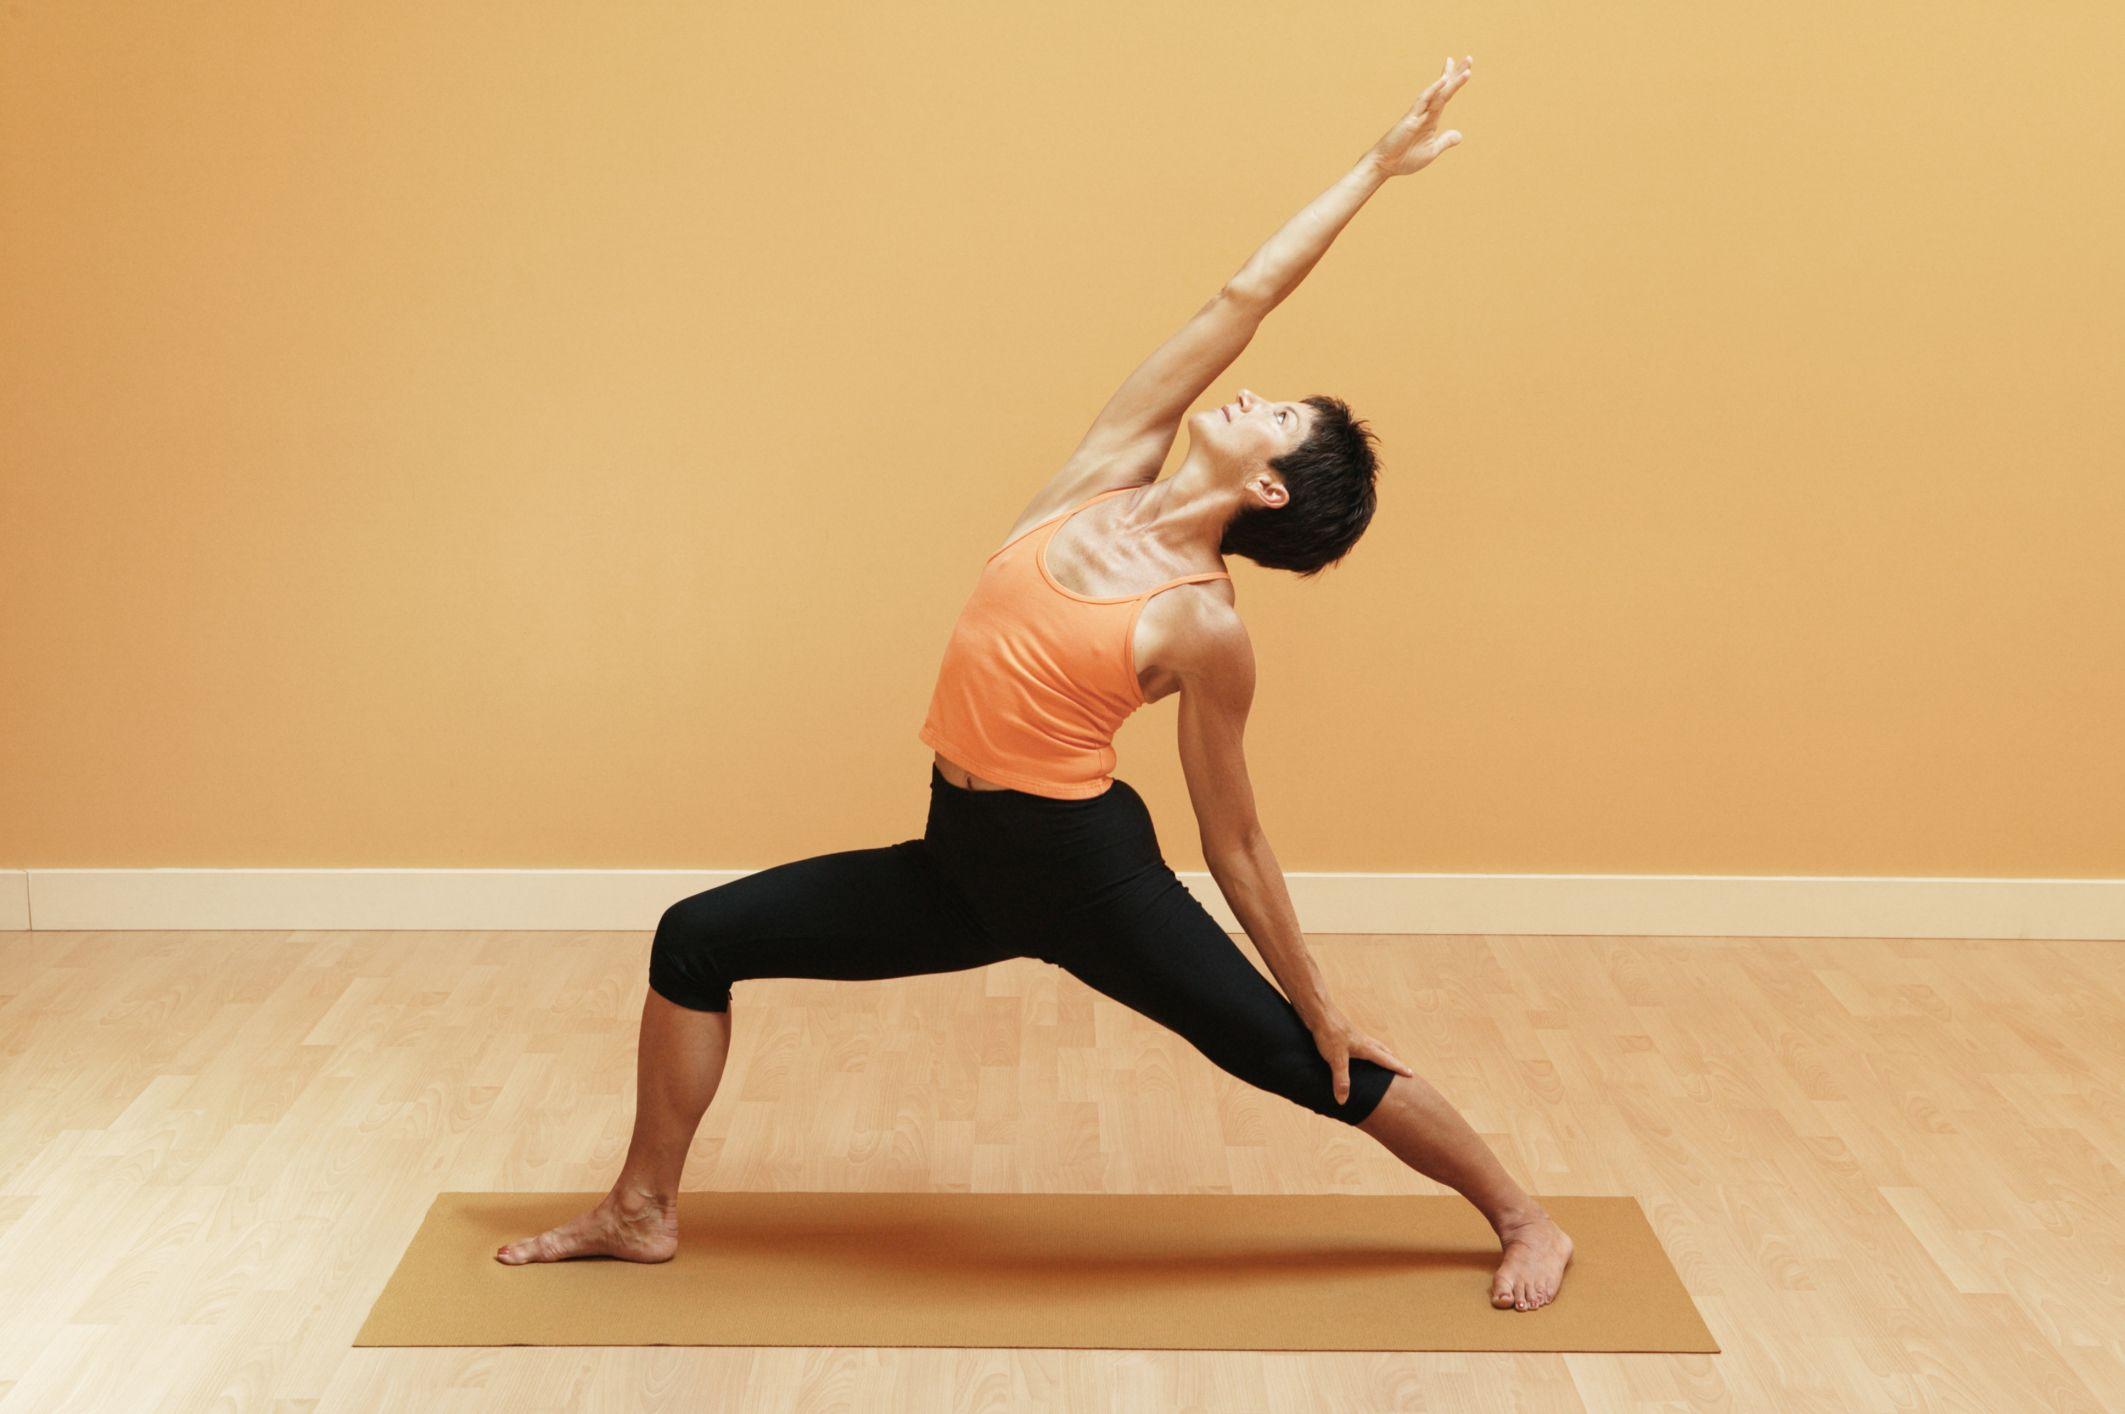 Yoga Spine Alignment Yoga poses for beginners, Scoliosis